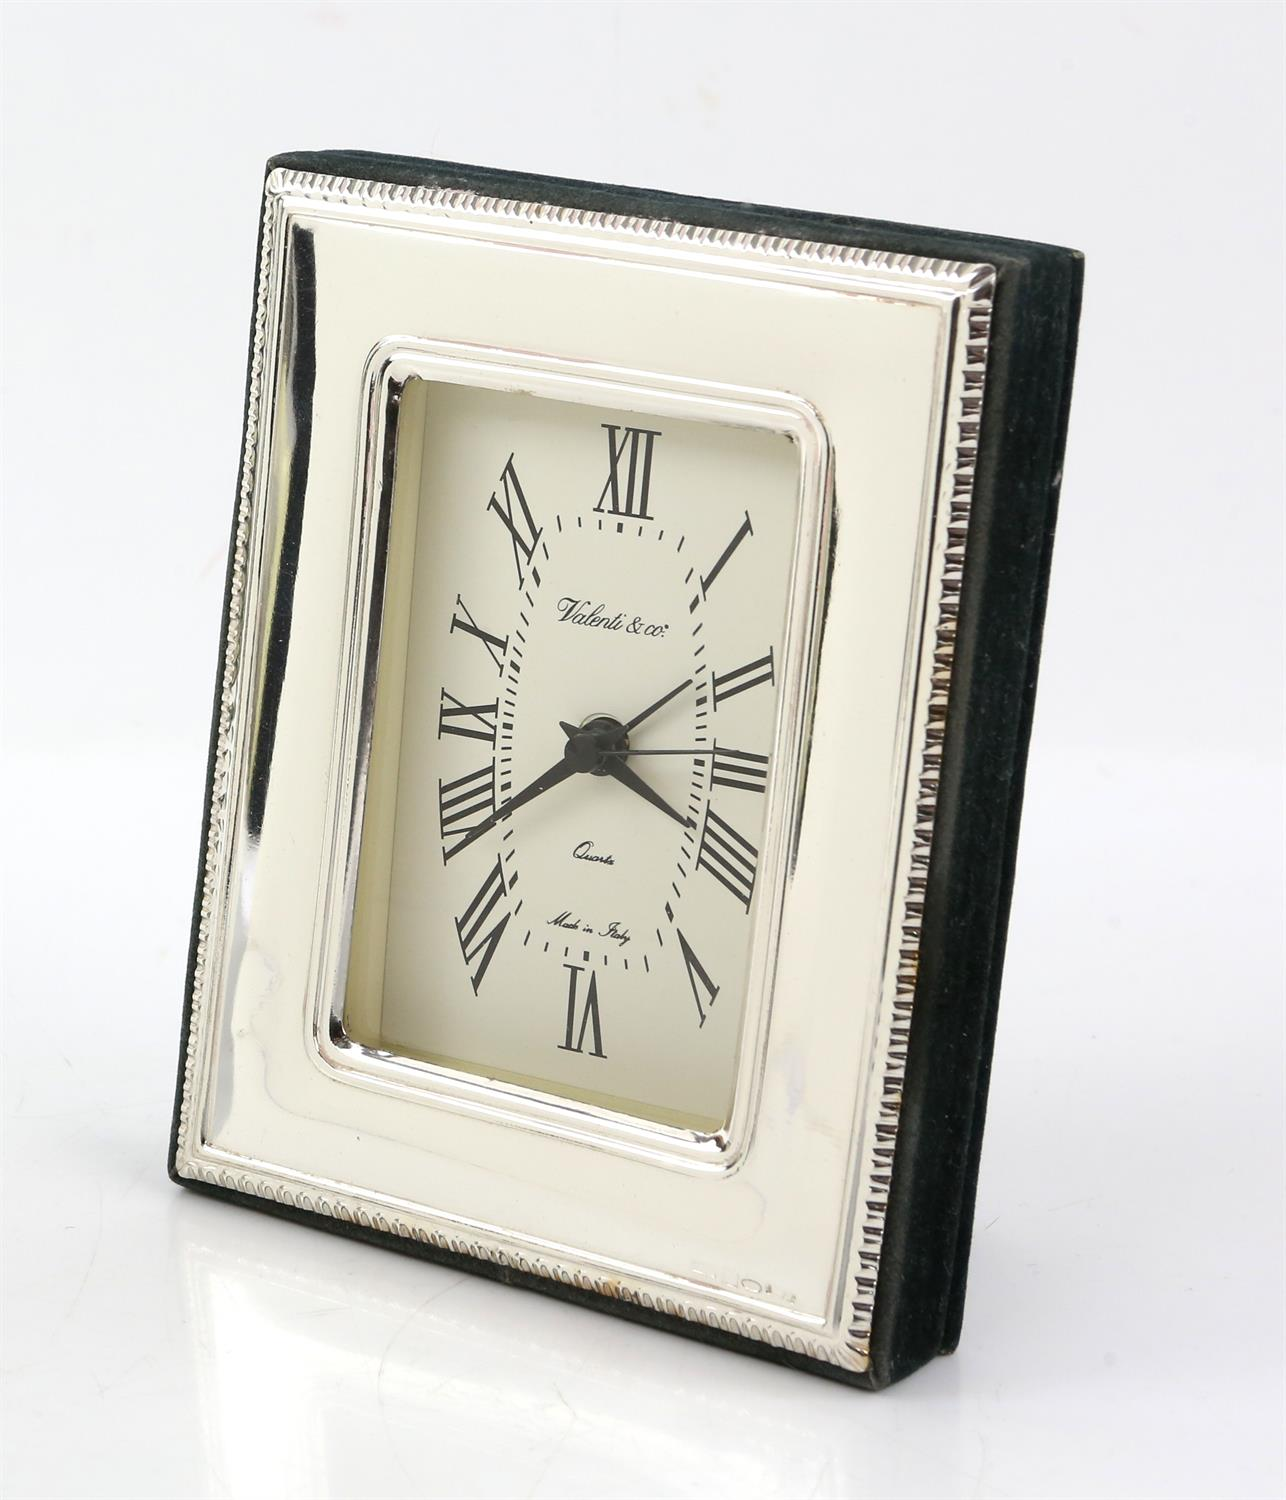 Continental silver framed clock by Valenti and Co - Image 3 of 4